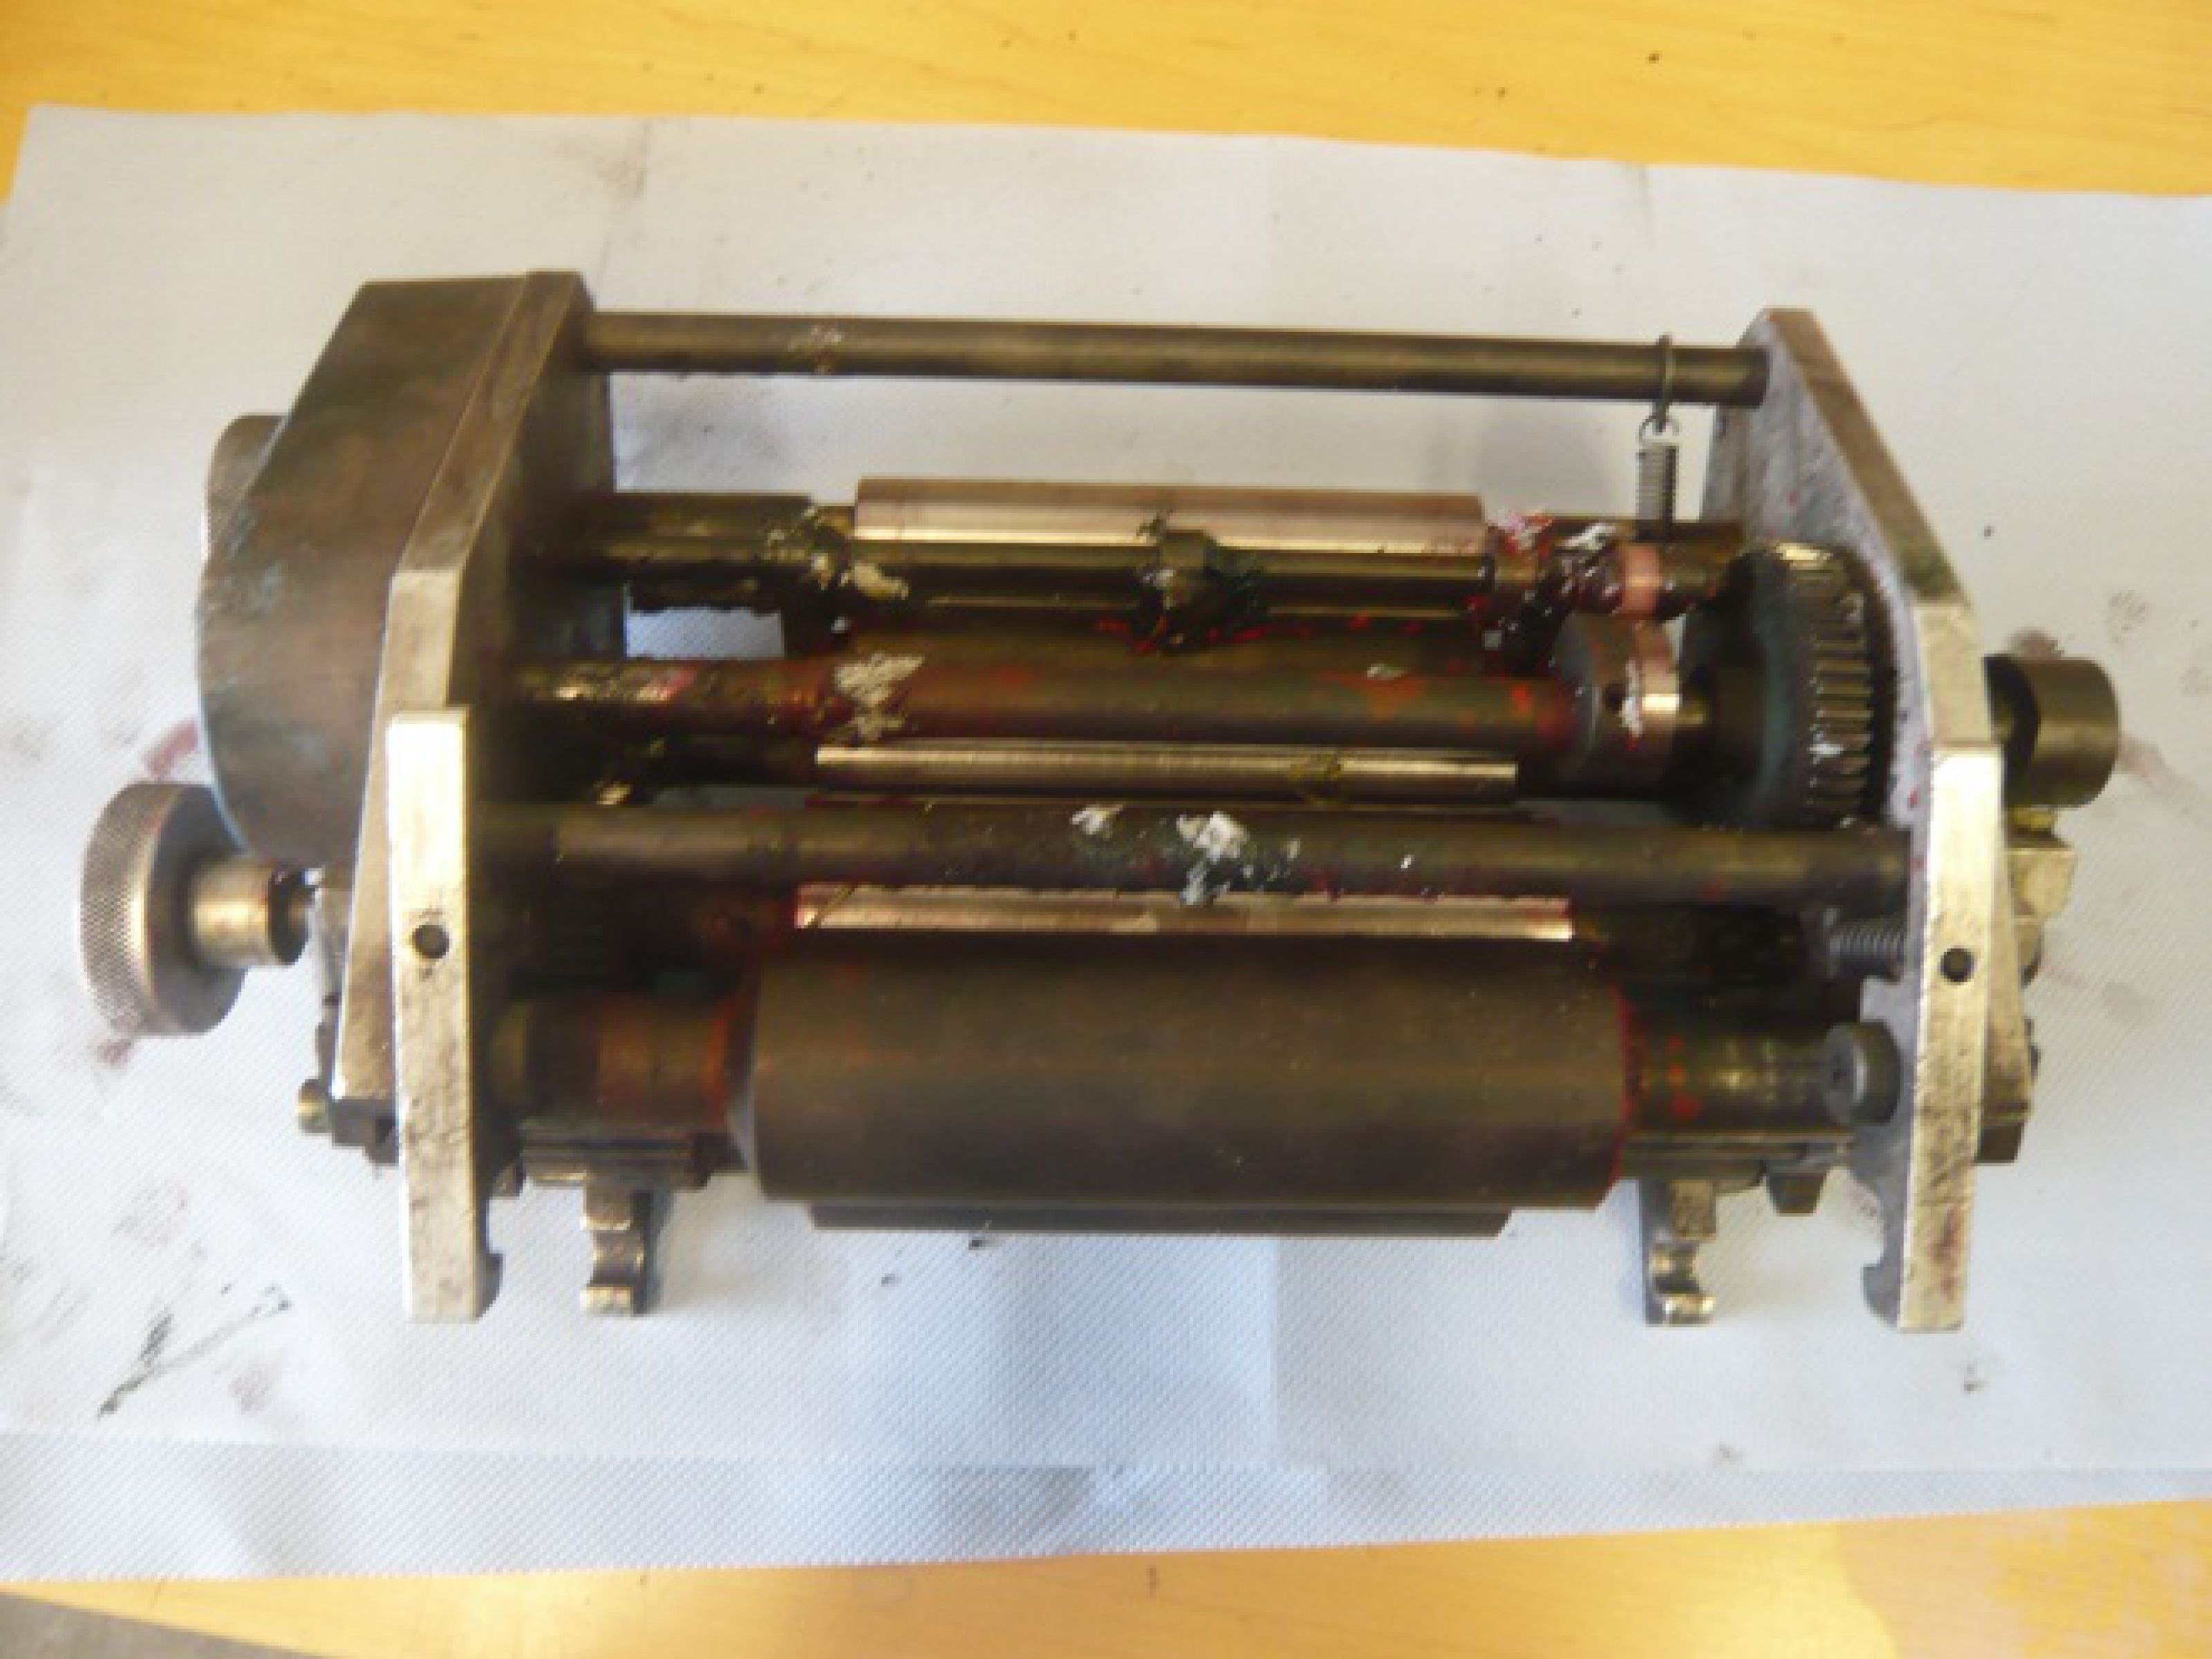 Print roller before